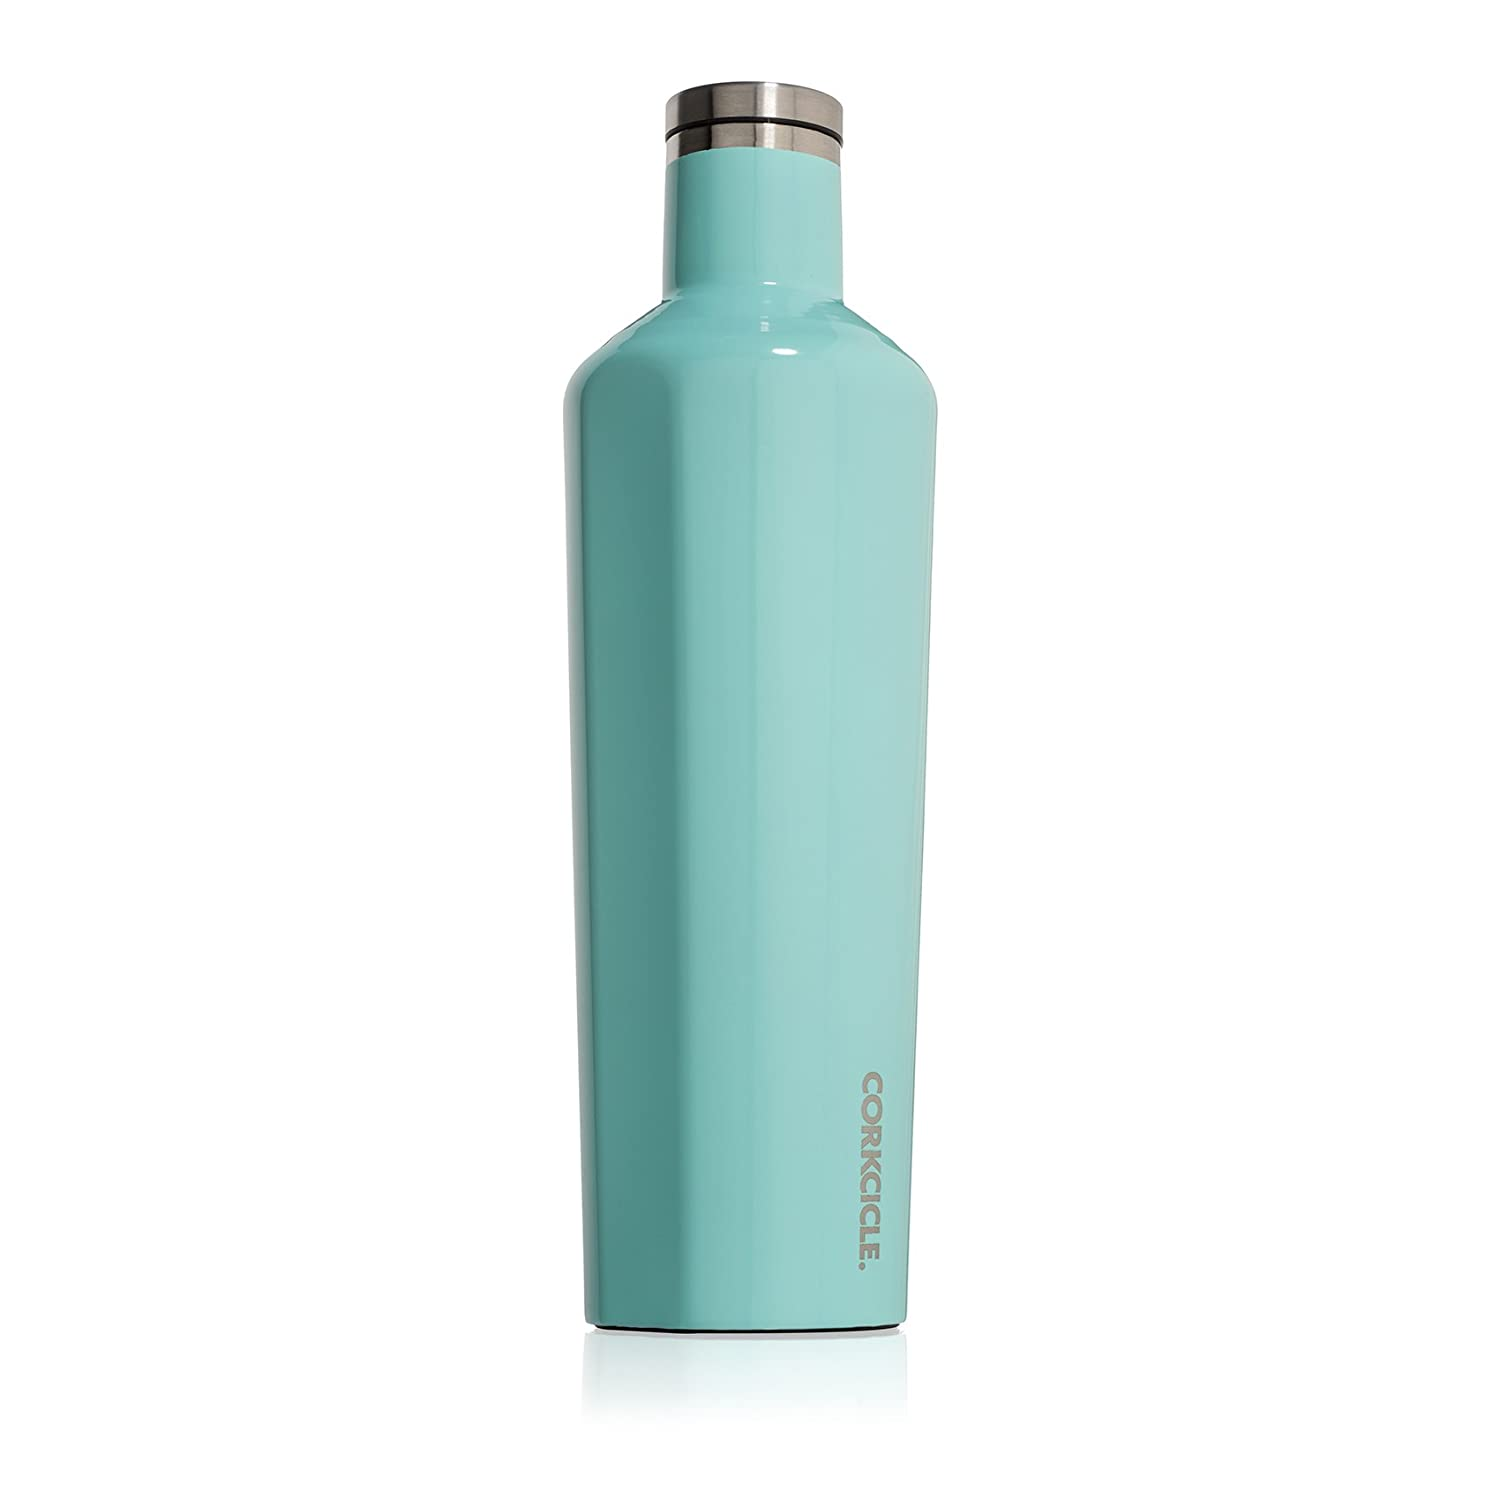 Corkcicle Canteen Classic Collection - Water Bottle & Thermos - Triple Insulated Shatterproof Stainless Steel, Gloss Turquoise, 25 oz